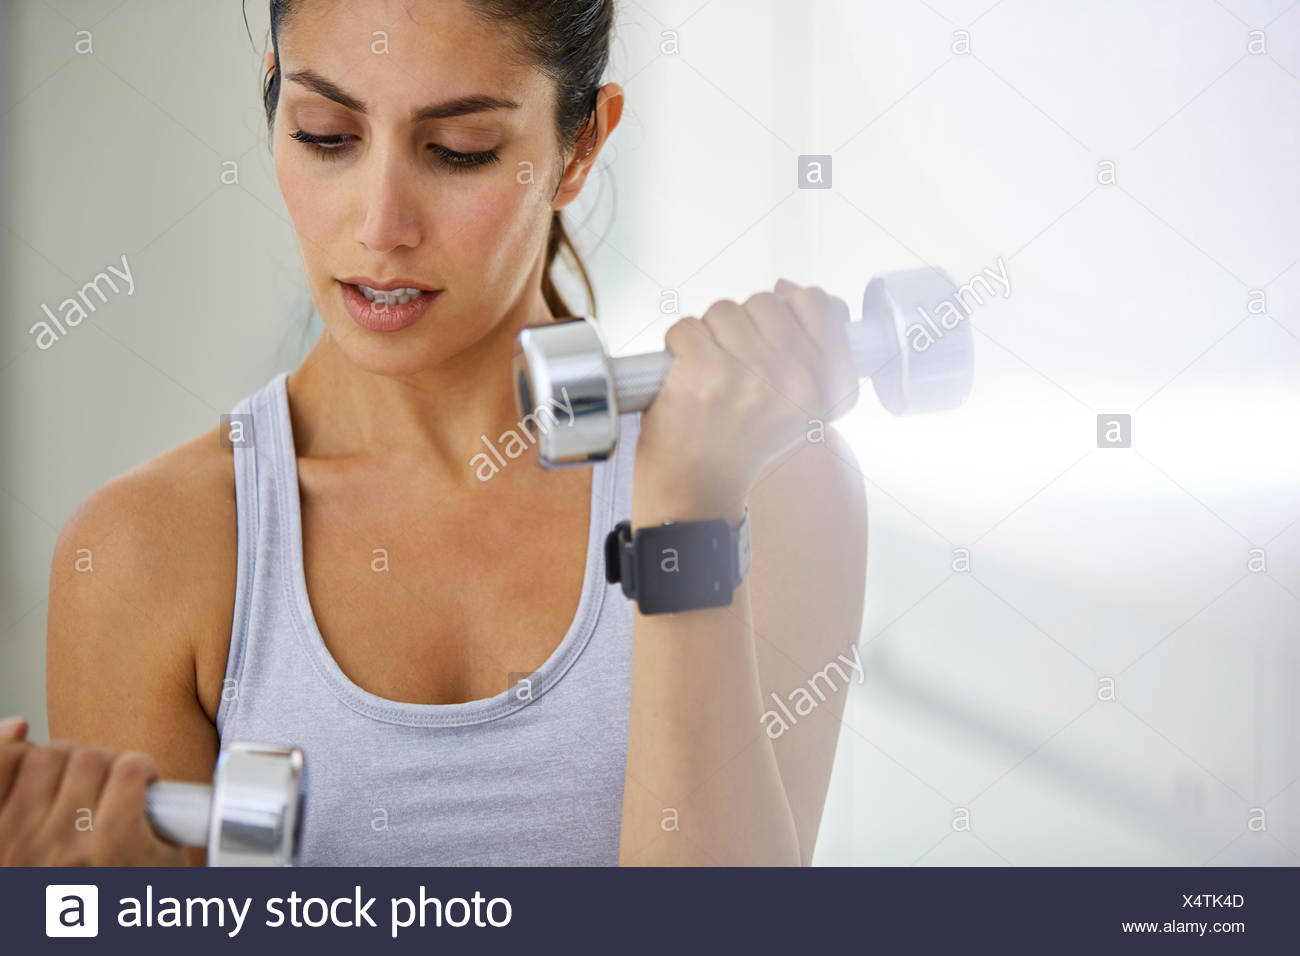 Focused woman doing biceps curls with dumbbells - Stock Image